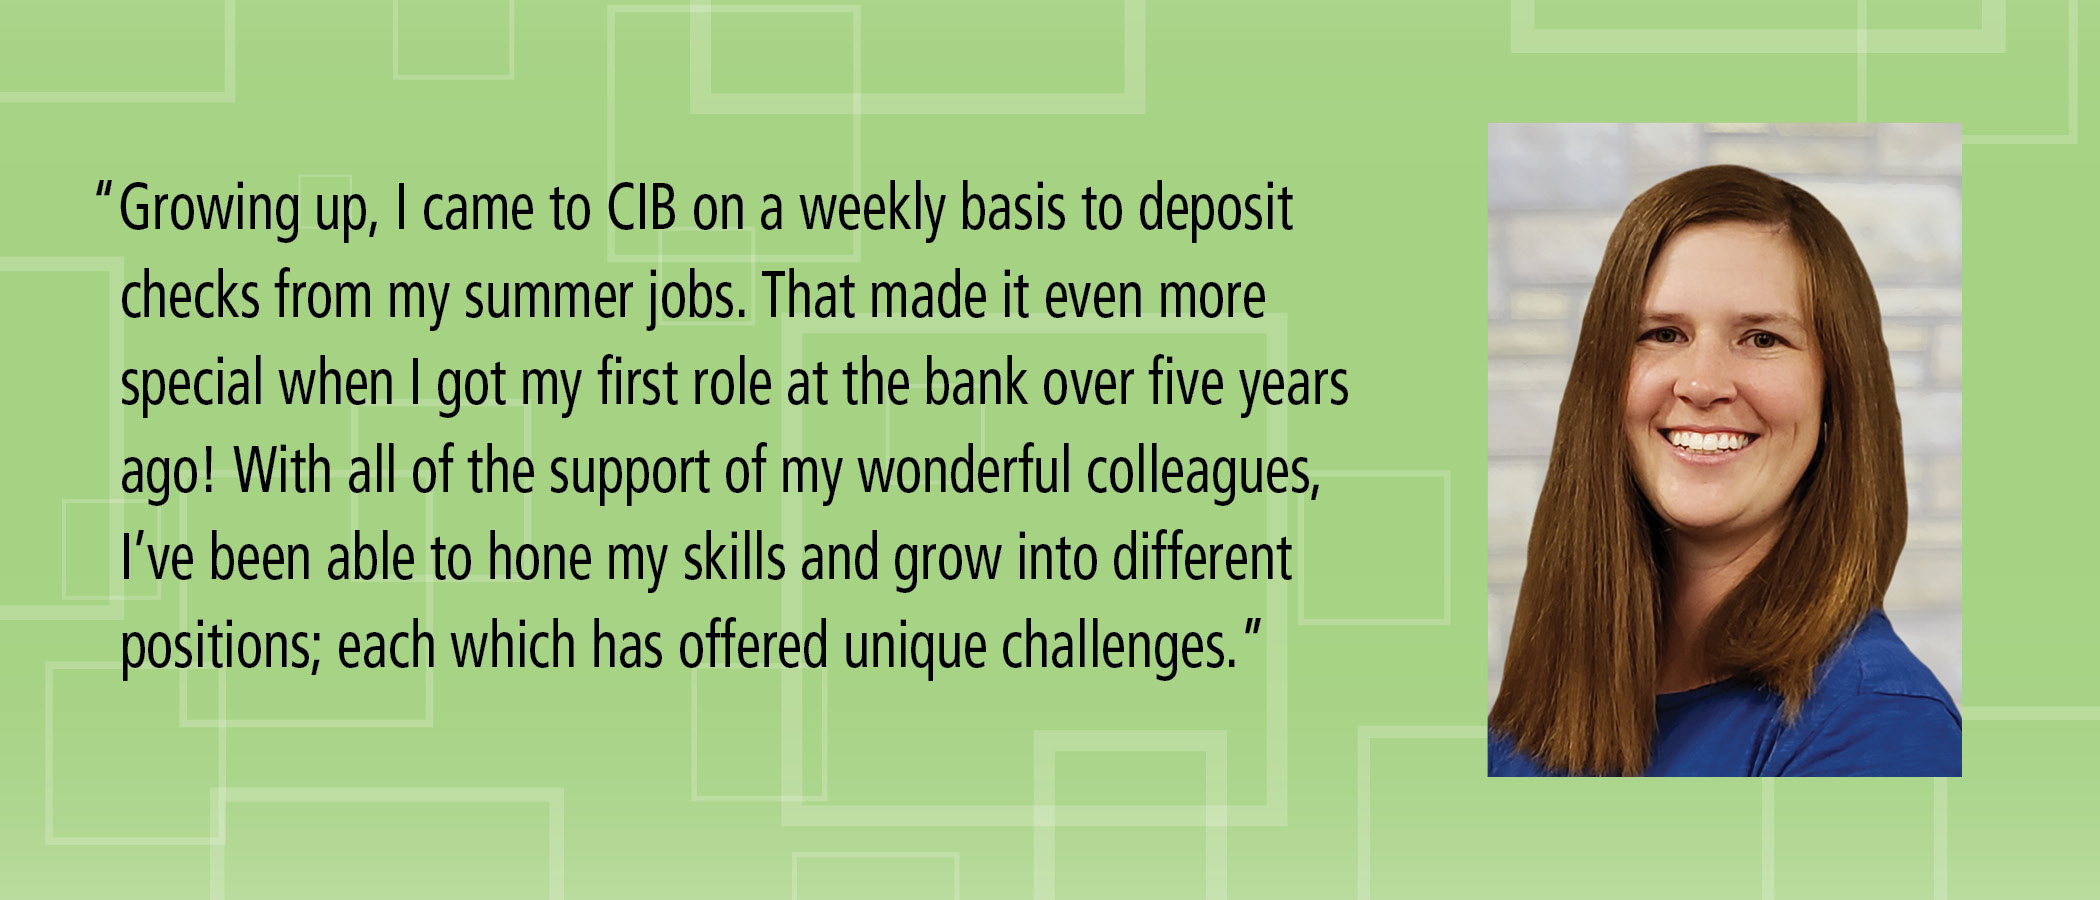 Growing up, I came to CIB on a weekly basis to deposit checks from my summer jobs. That made it even more special when I got my first role at the bank over five years ago! With all of the support of my wonderful colleagues, I?ve been able to hone my skills and grow into different positions; each which has offered unique challenges.